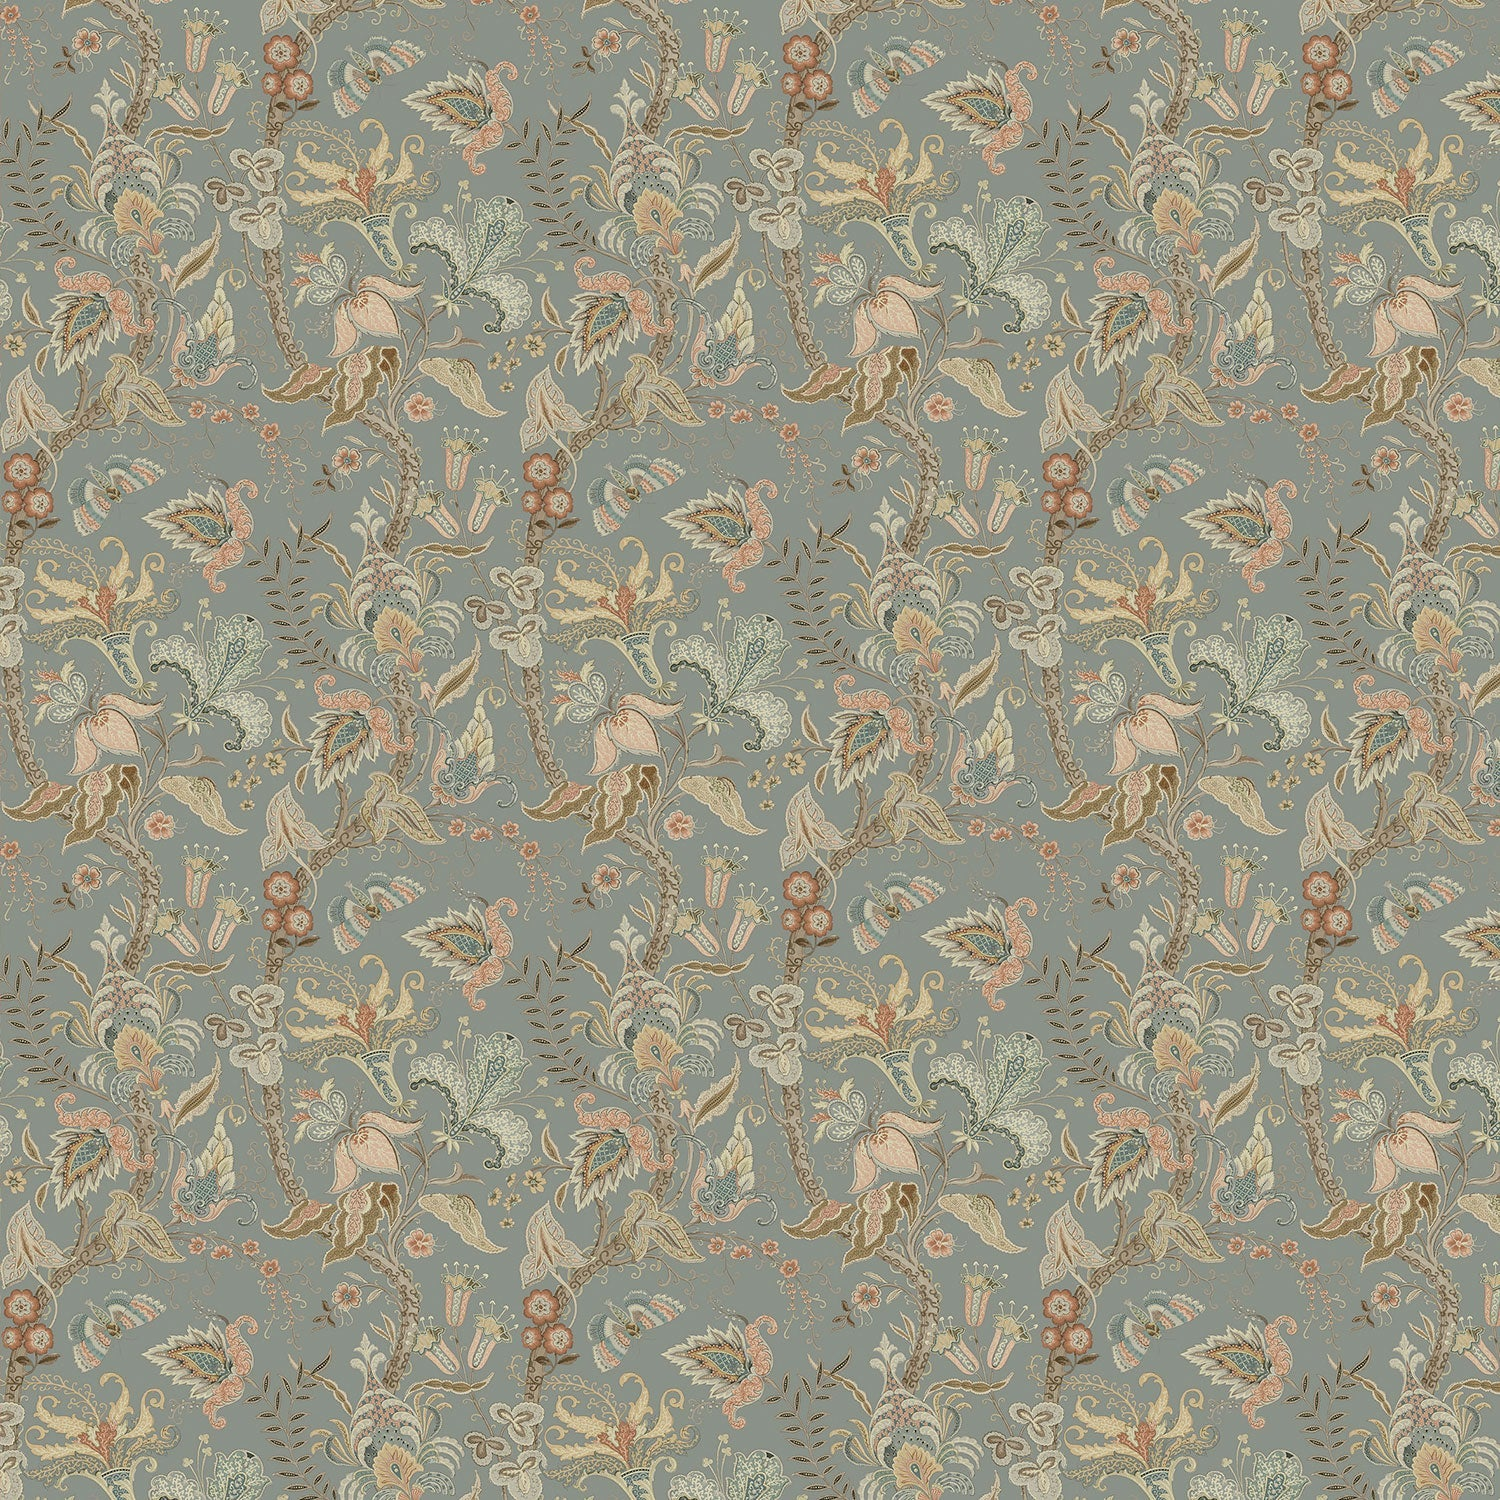 Wallpaper sample of a grey wallpaper with stylised floral design